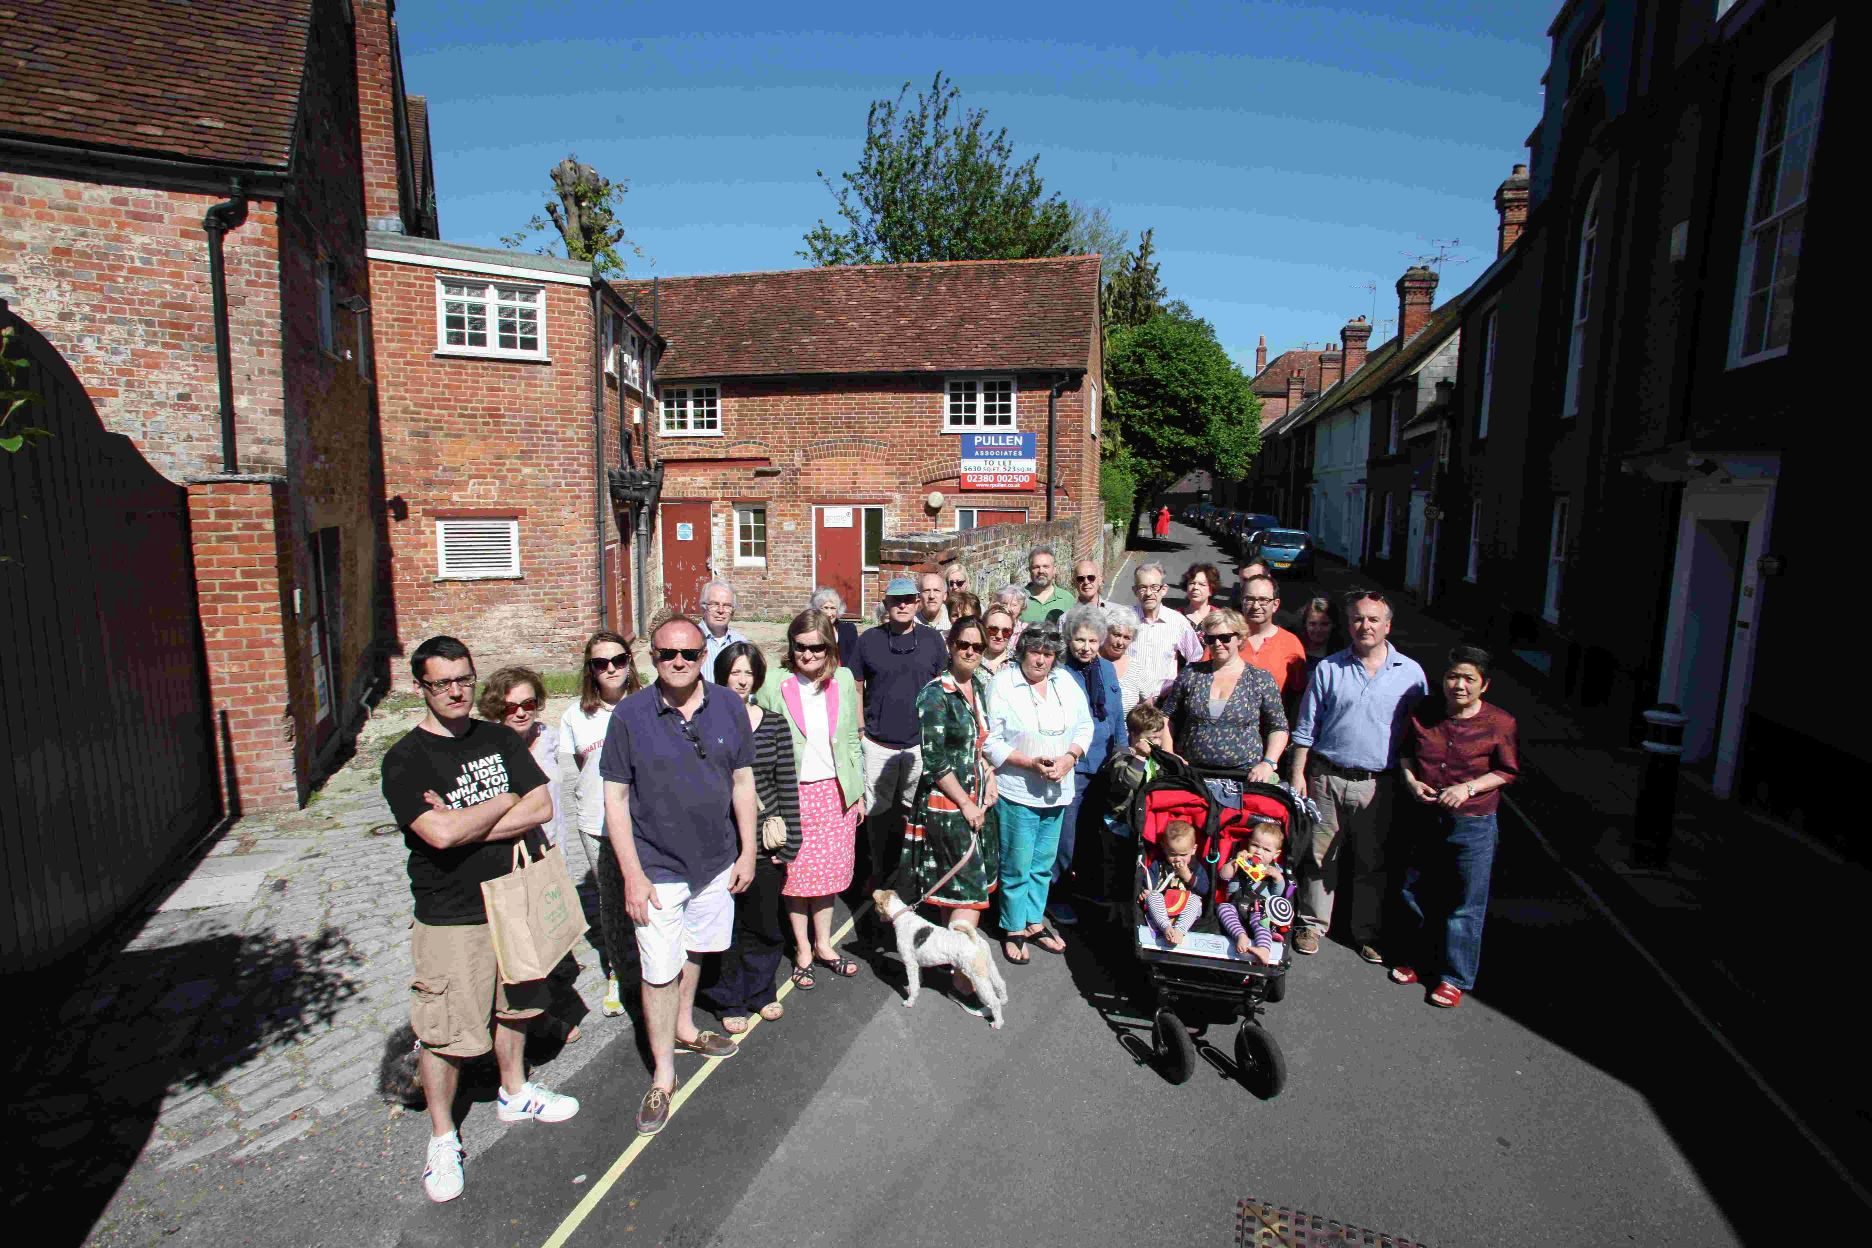 esidents in Colebrook Street, Winchester, back in June who were angry at plans to turn Abbey Mill into a River Cottage Restaurant